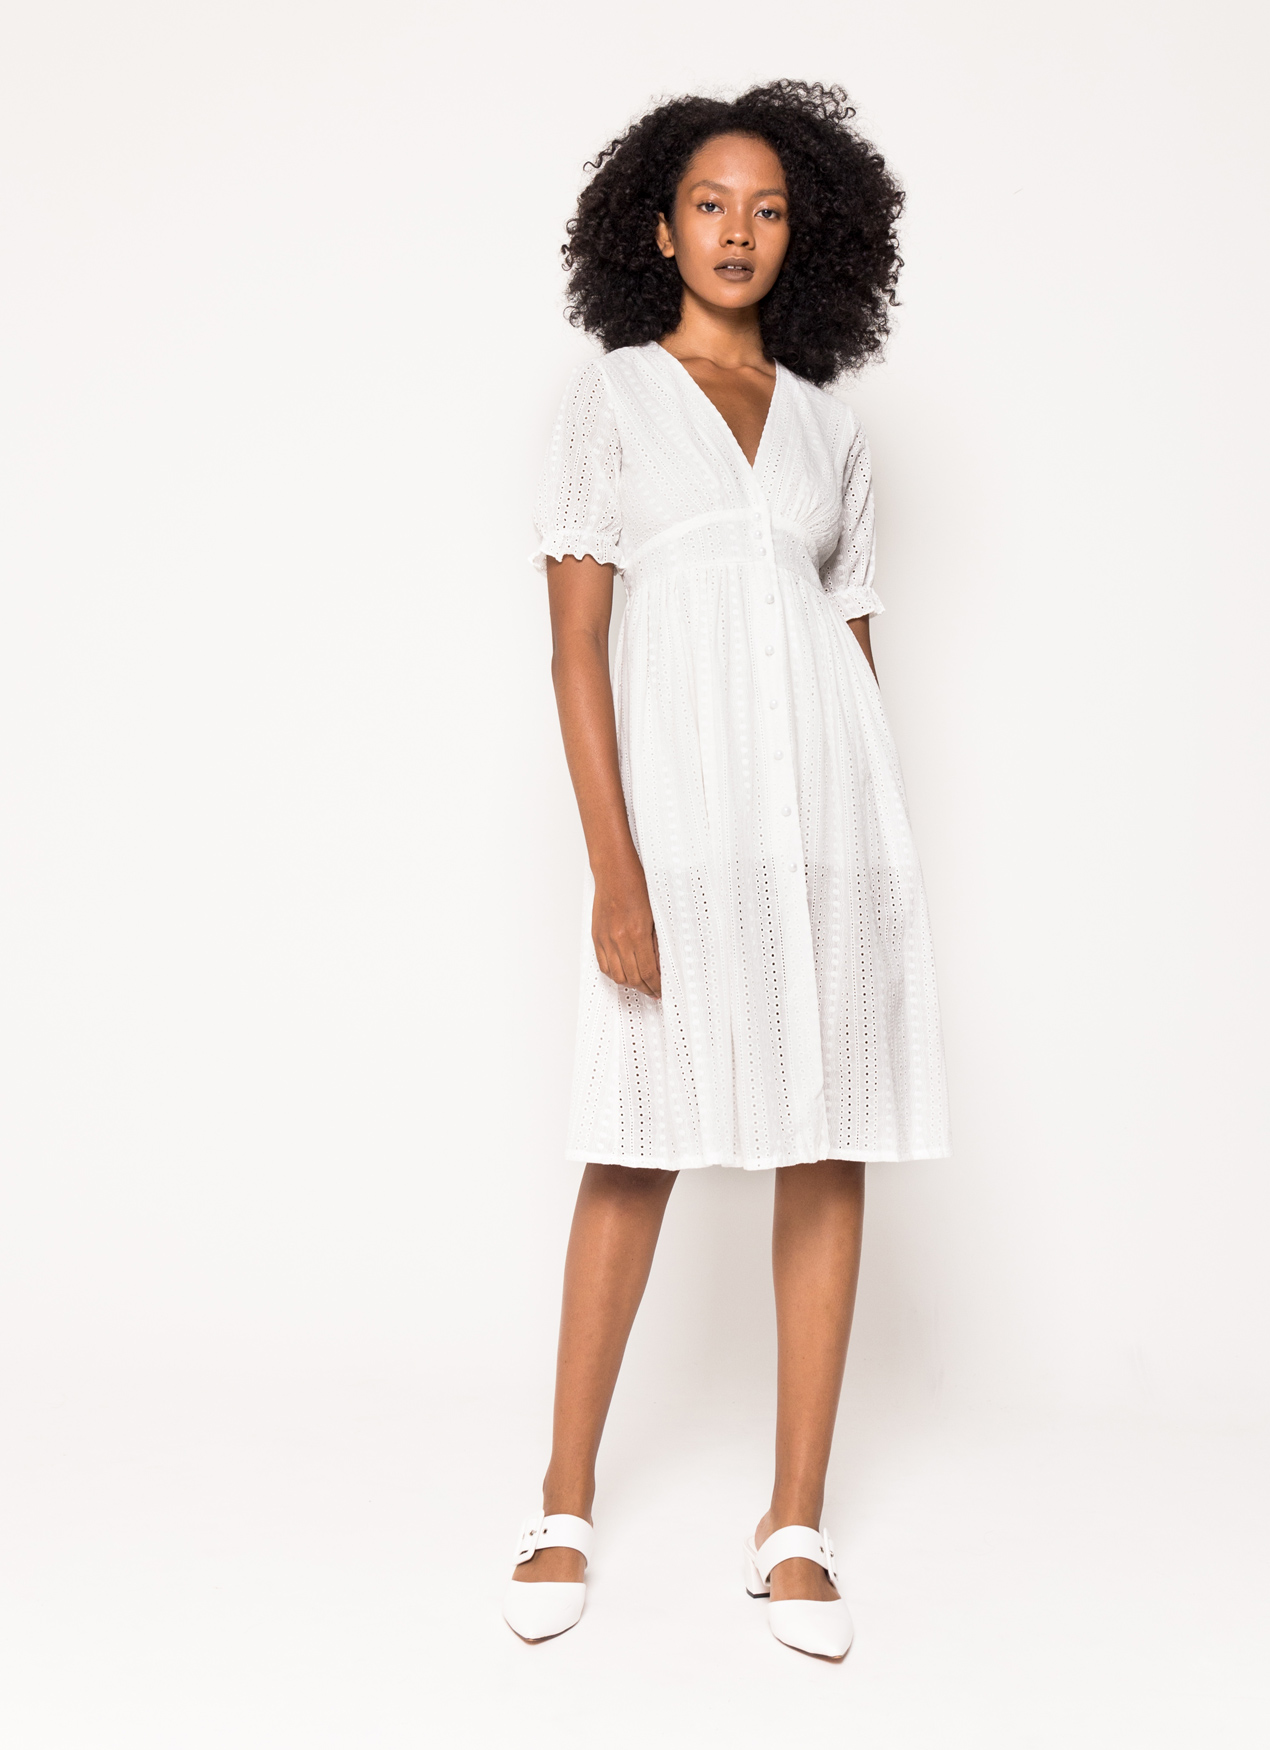 BOWN Carice Dress - White